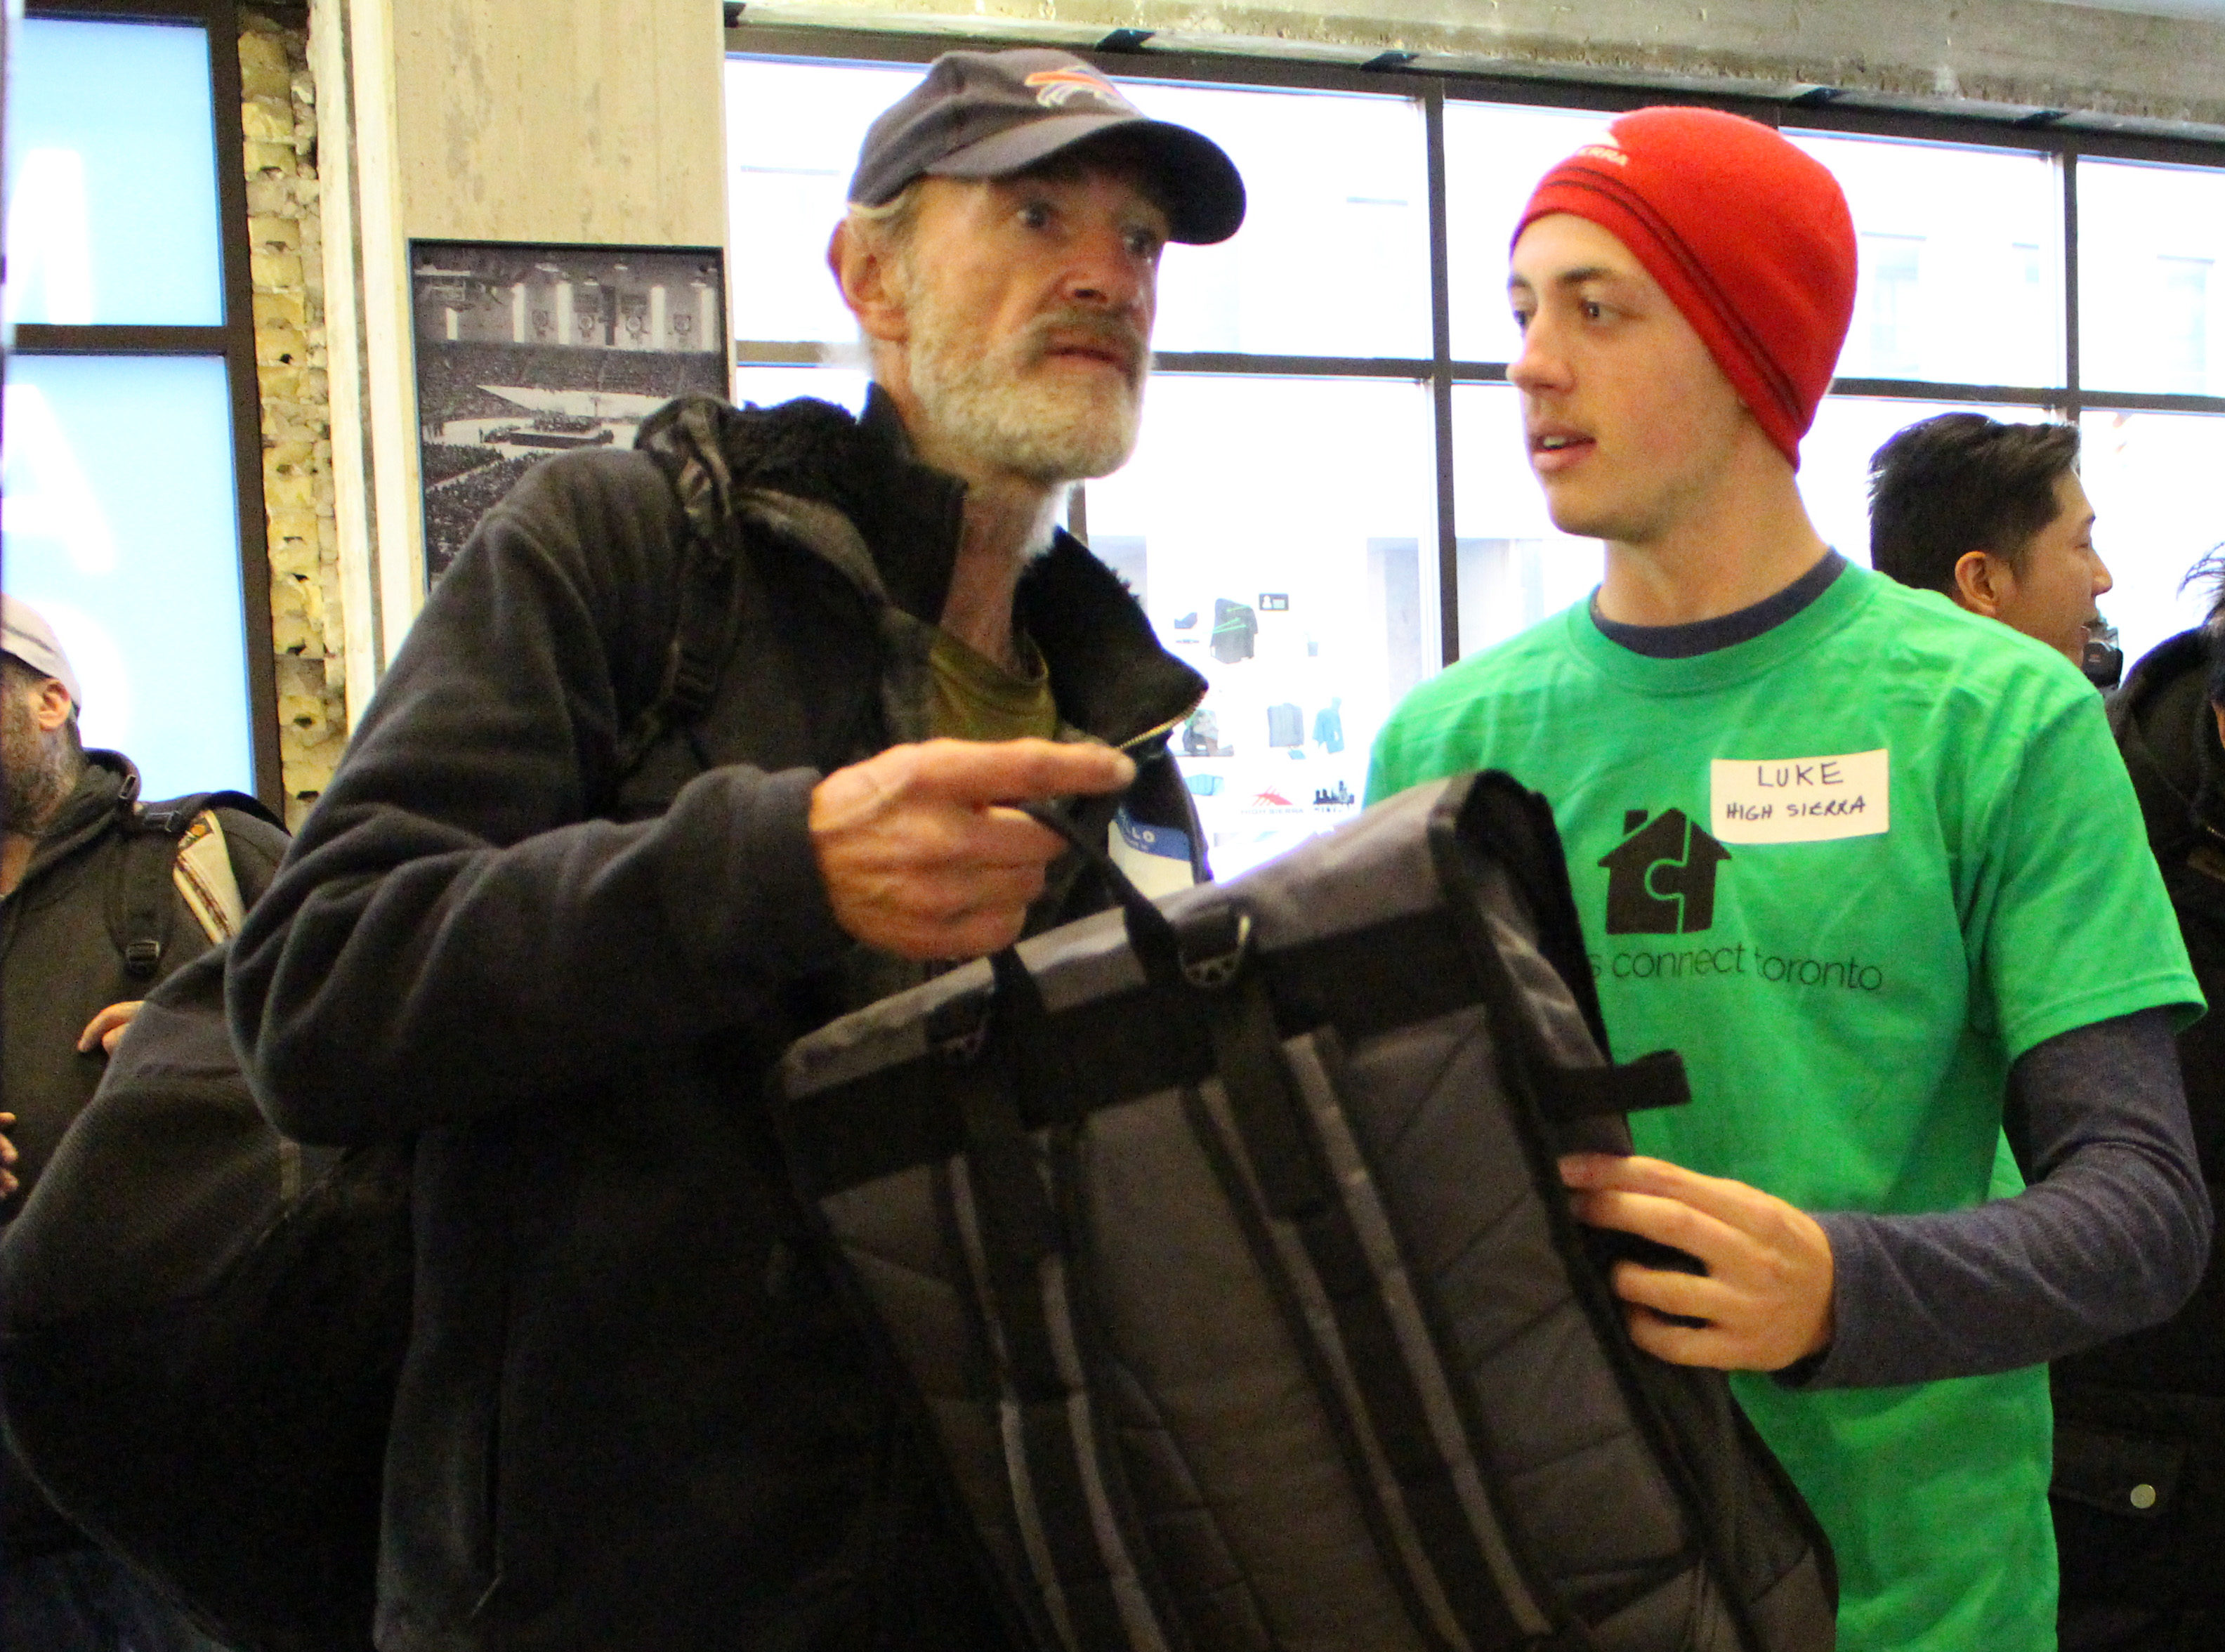 A man receives his new backpack, designed for life on the streets. (Robert Liwanag/Ryersonian Staff)